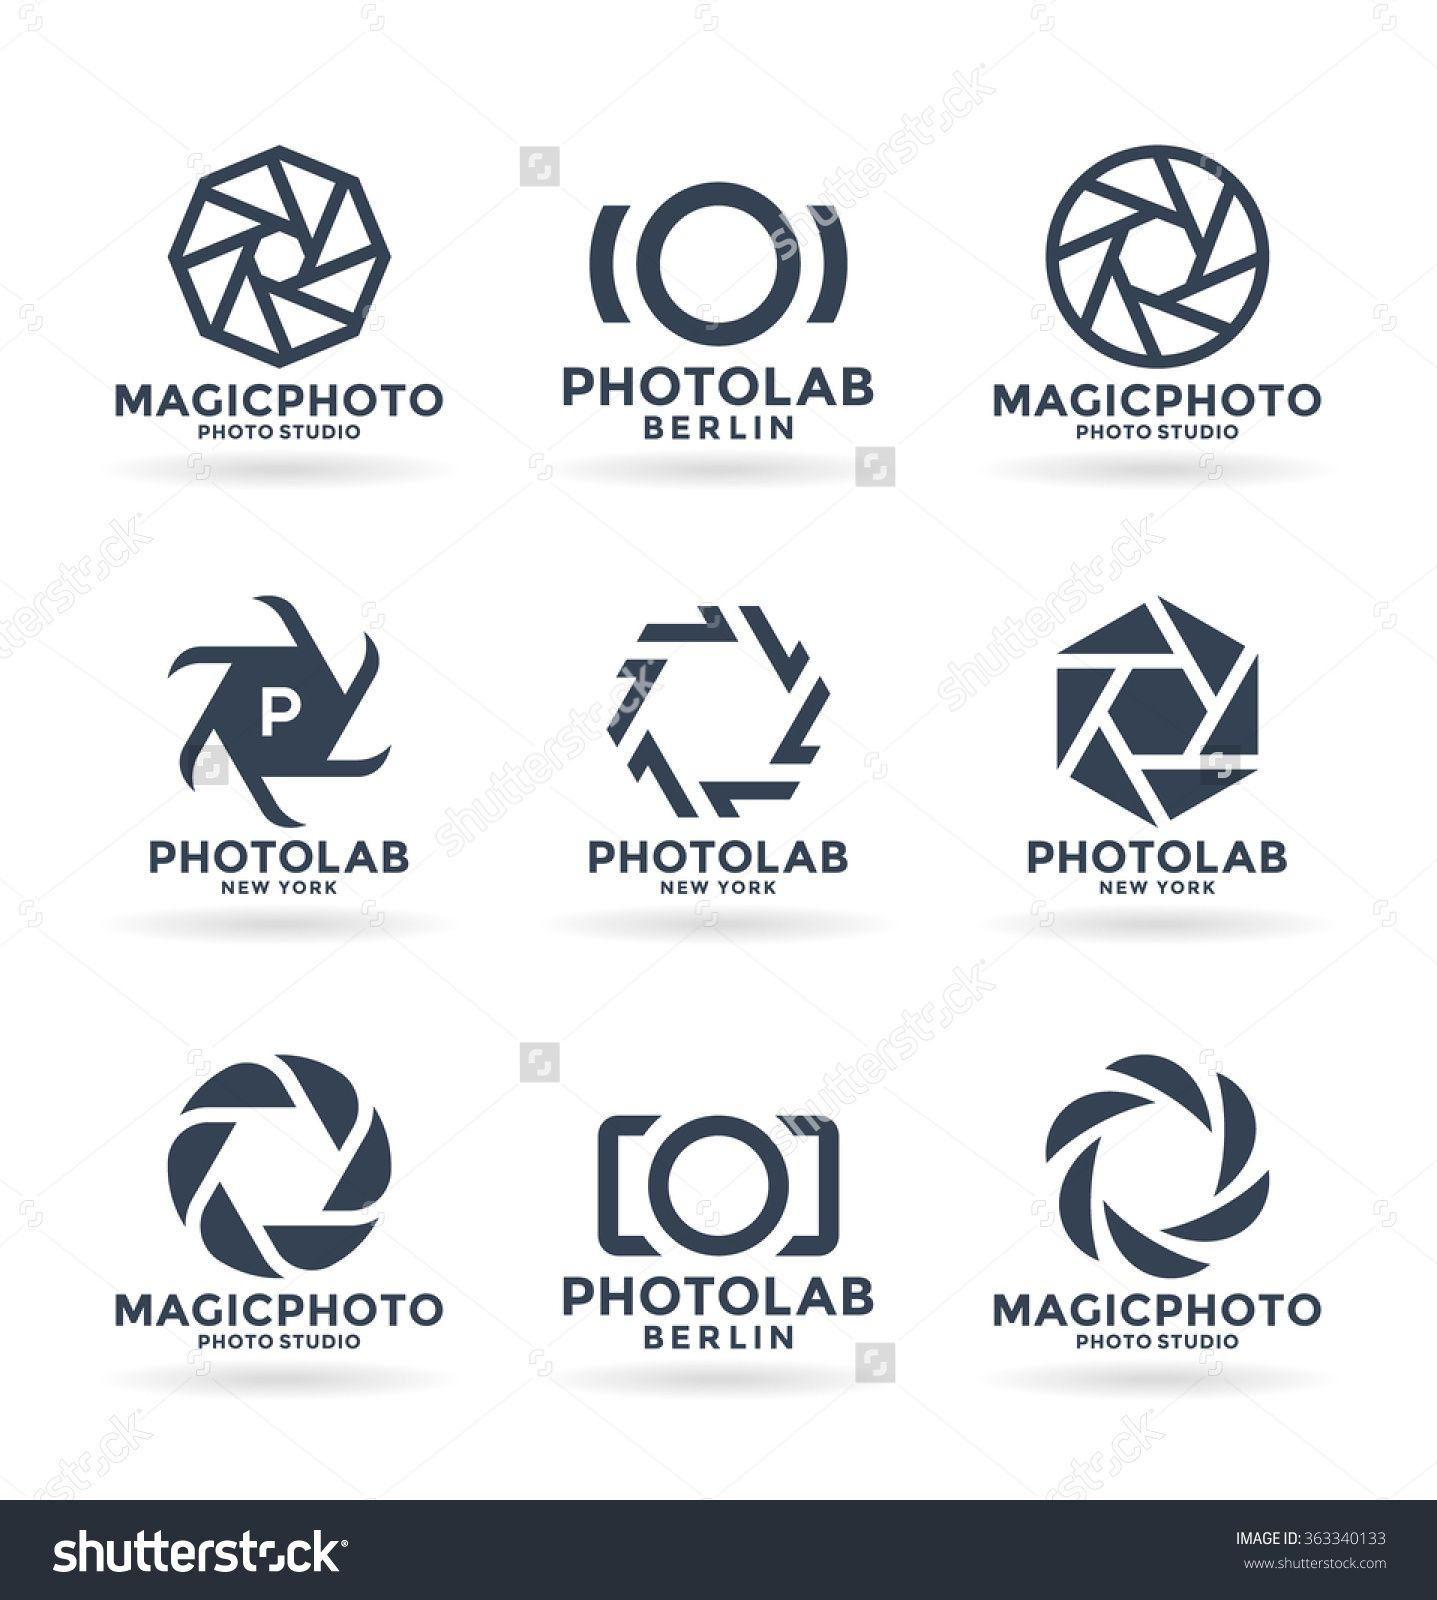 discover millions of royalty free photos illustrations and